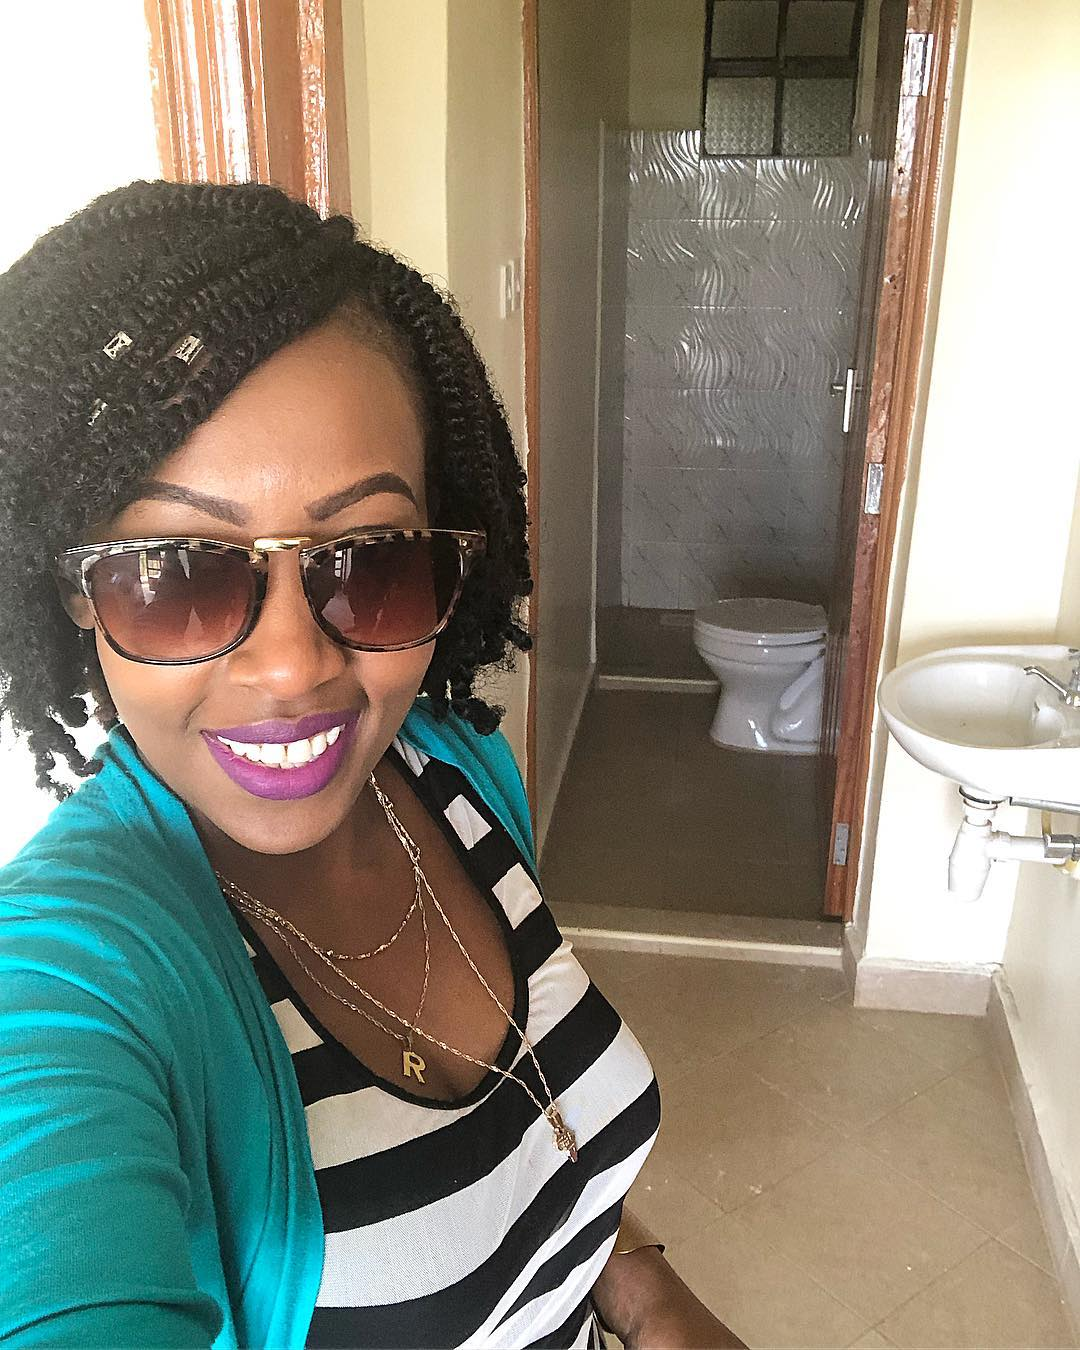 Mwalimu Rachel shows of her new home2 - Mwalimu Rachel ni landlord! Fans thrilled as she shows off her house(photos)